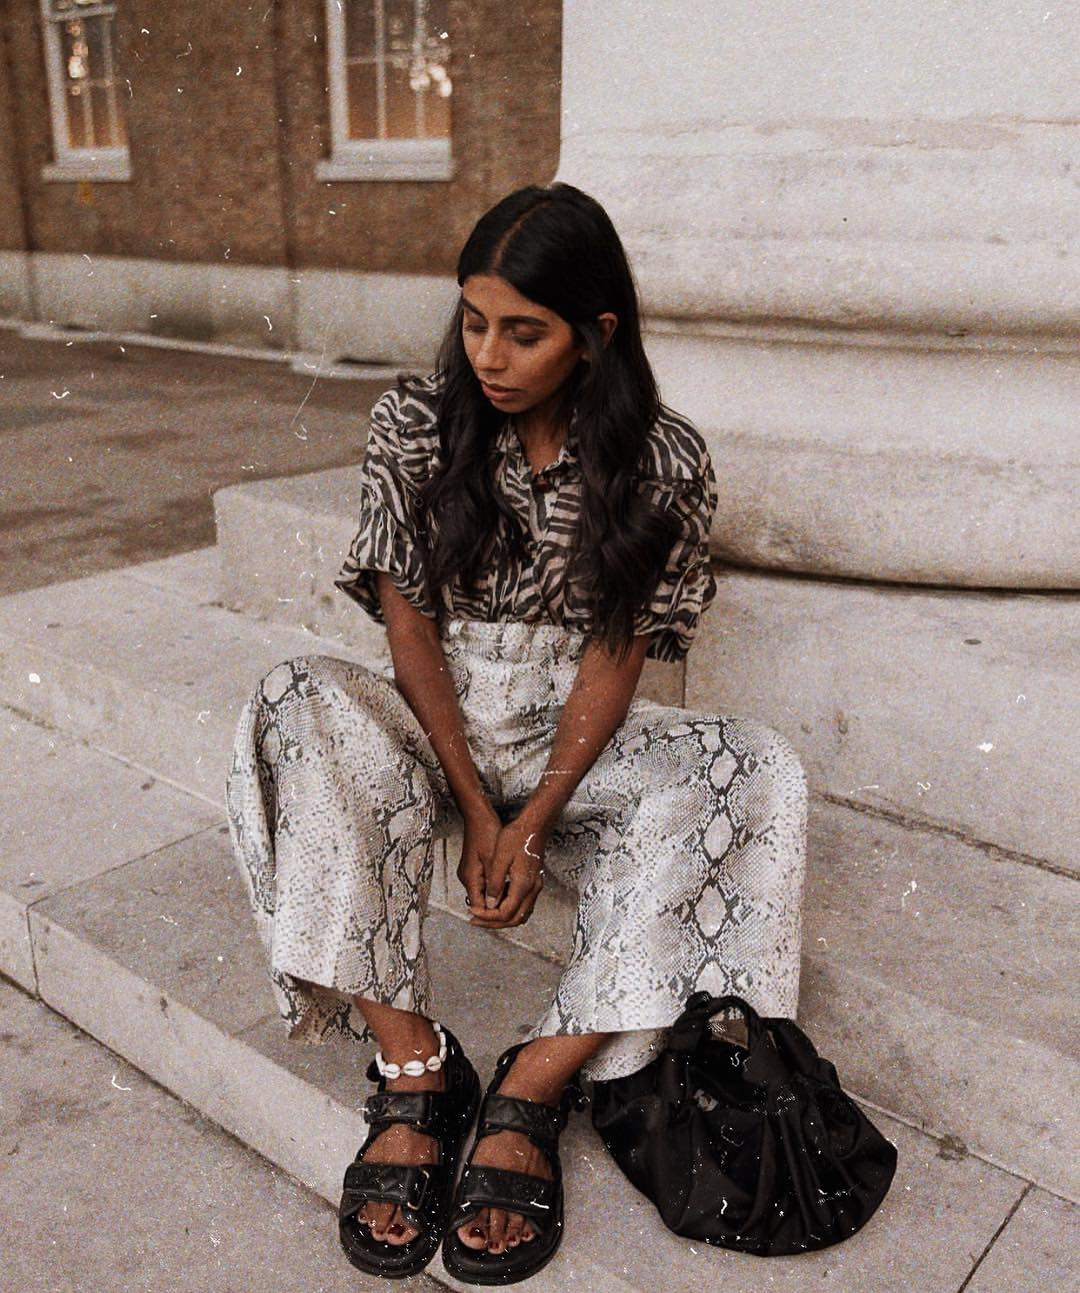 Zebra Print Shirt And Snakeskin Print Wide Pants With Birkenstocks For Summer 2019